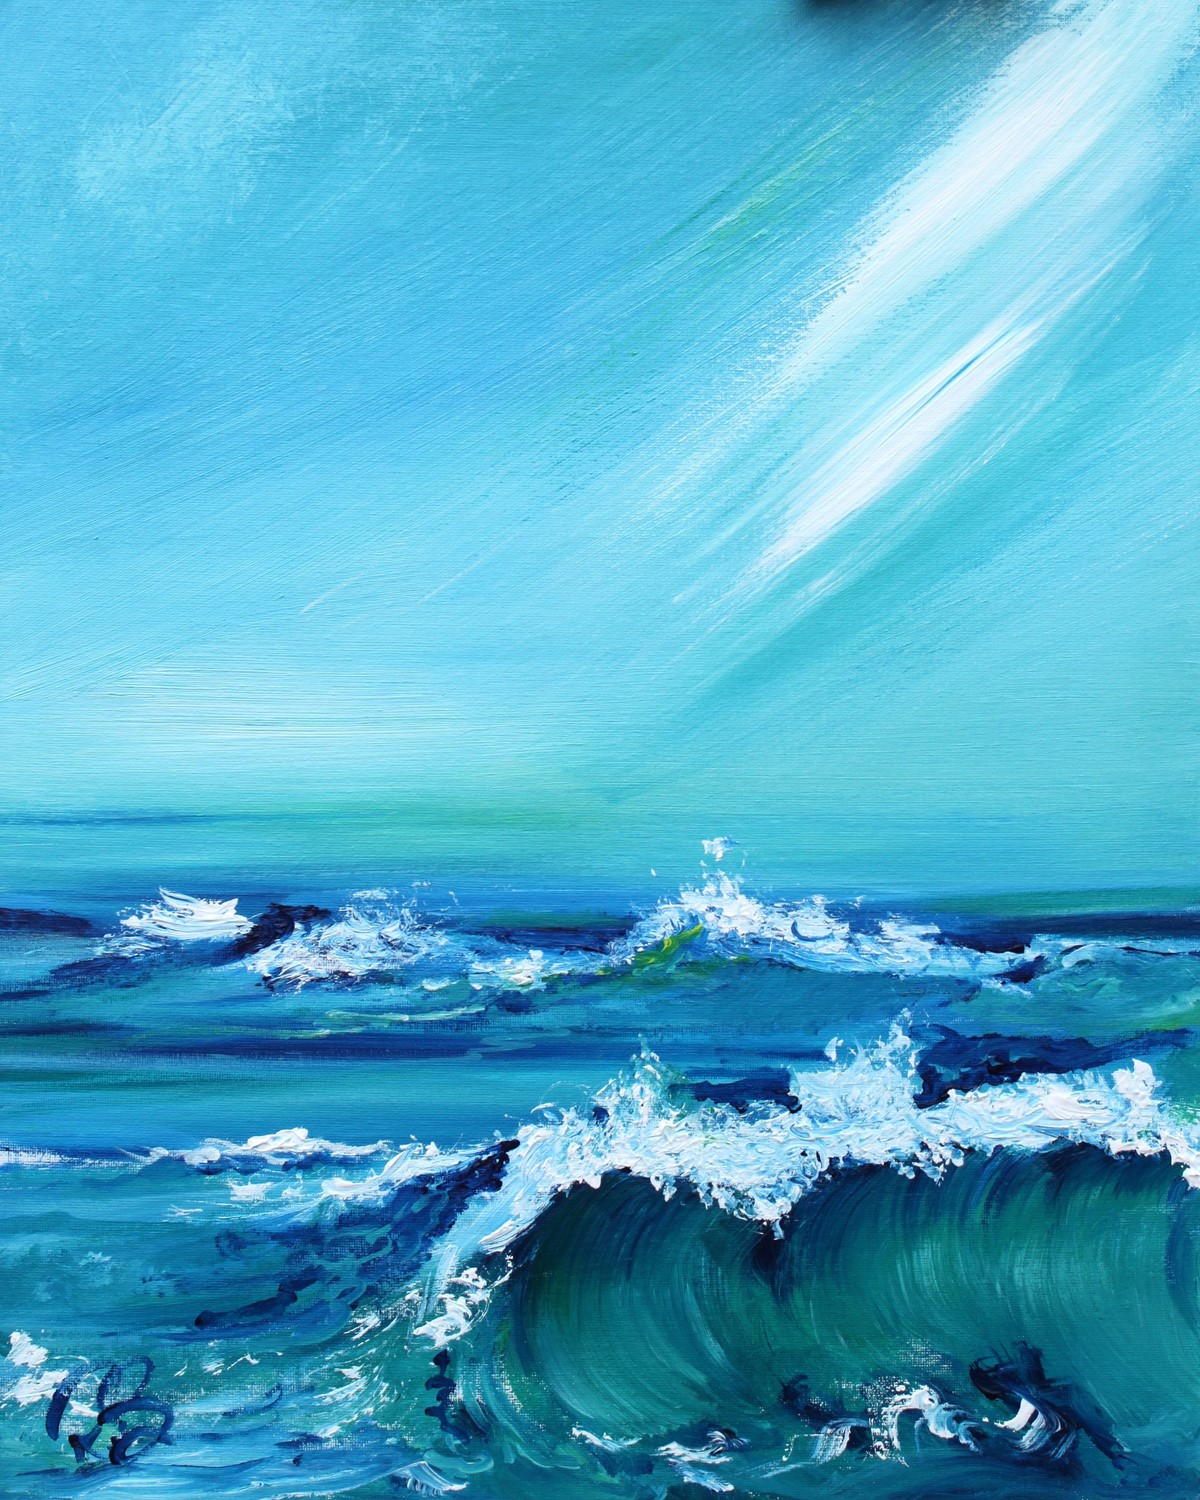 'Crest of a Wave' by artist Rosanne Barr